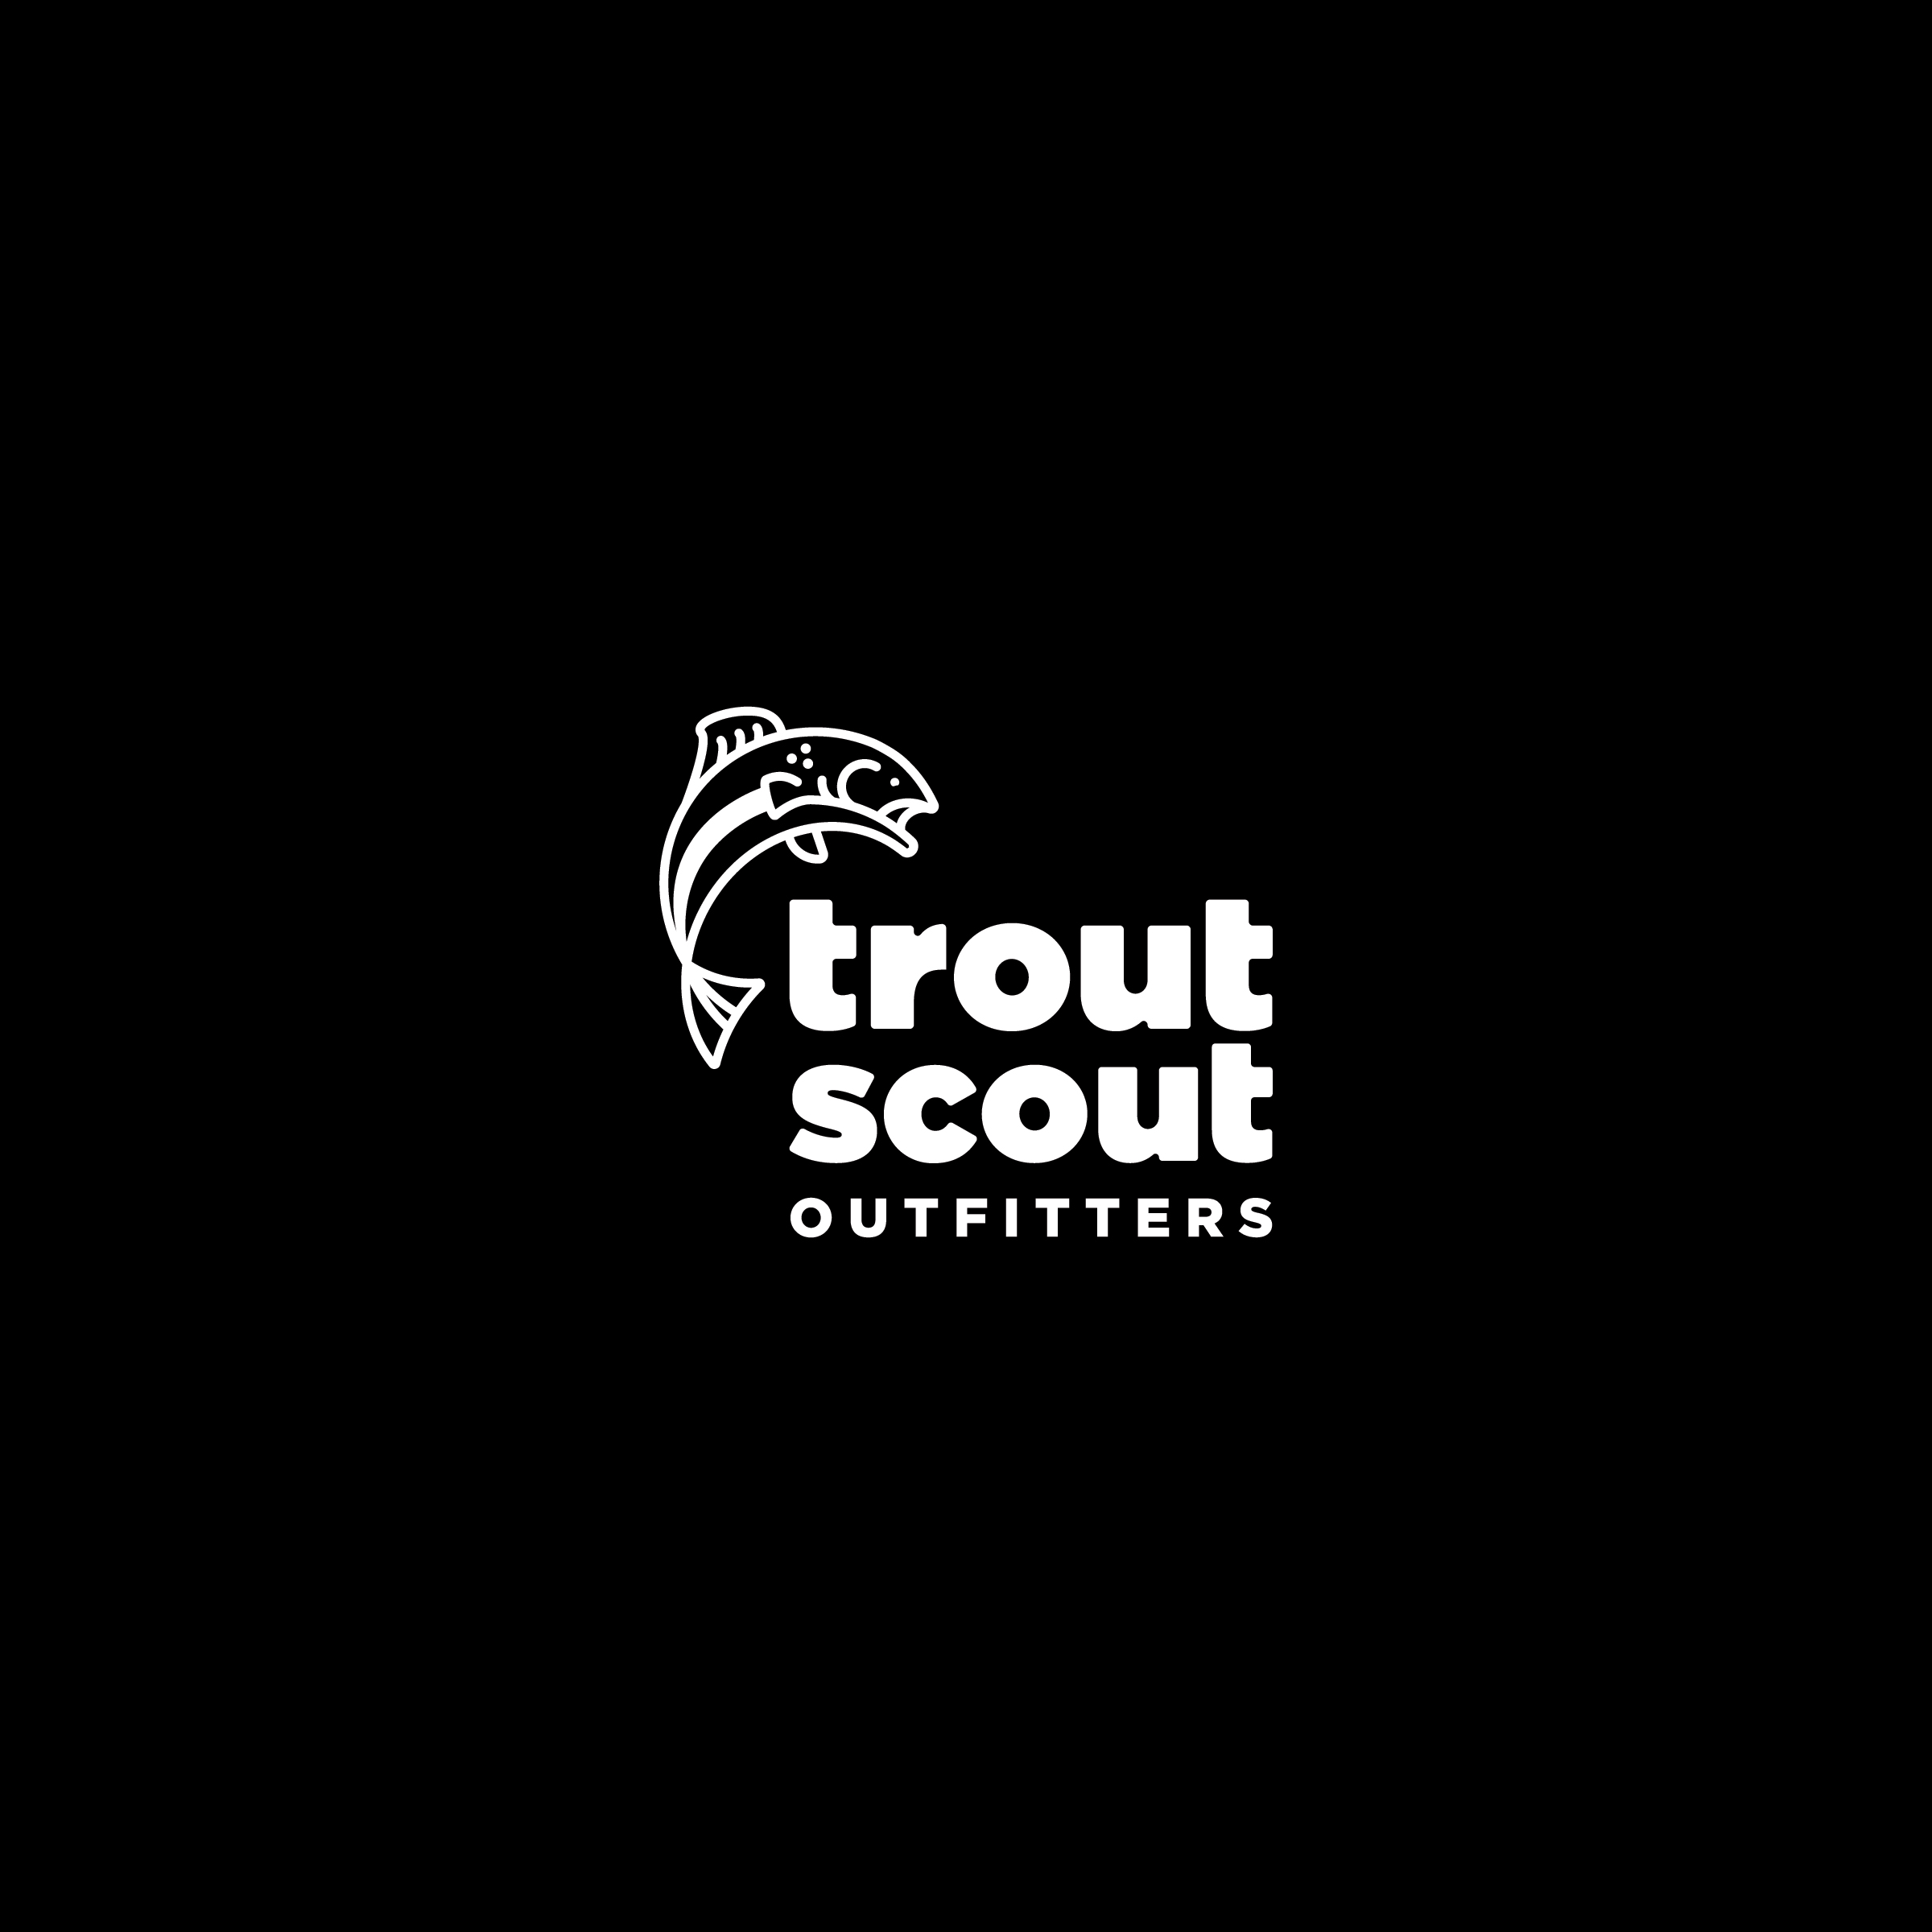 TroutScoutOutfitters_White_Vert.jpg